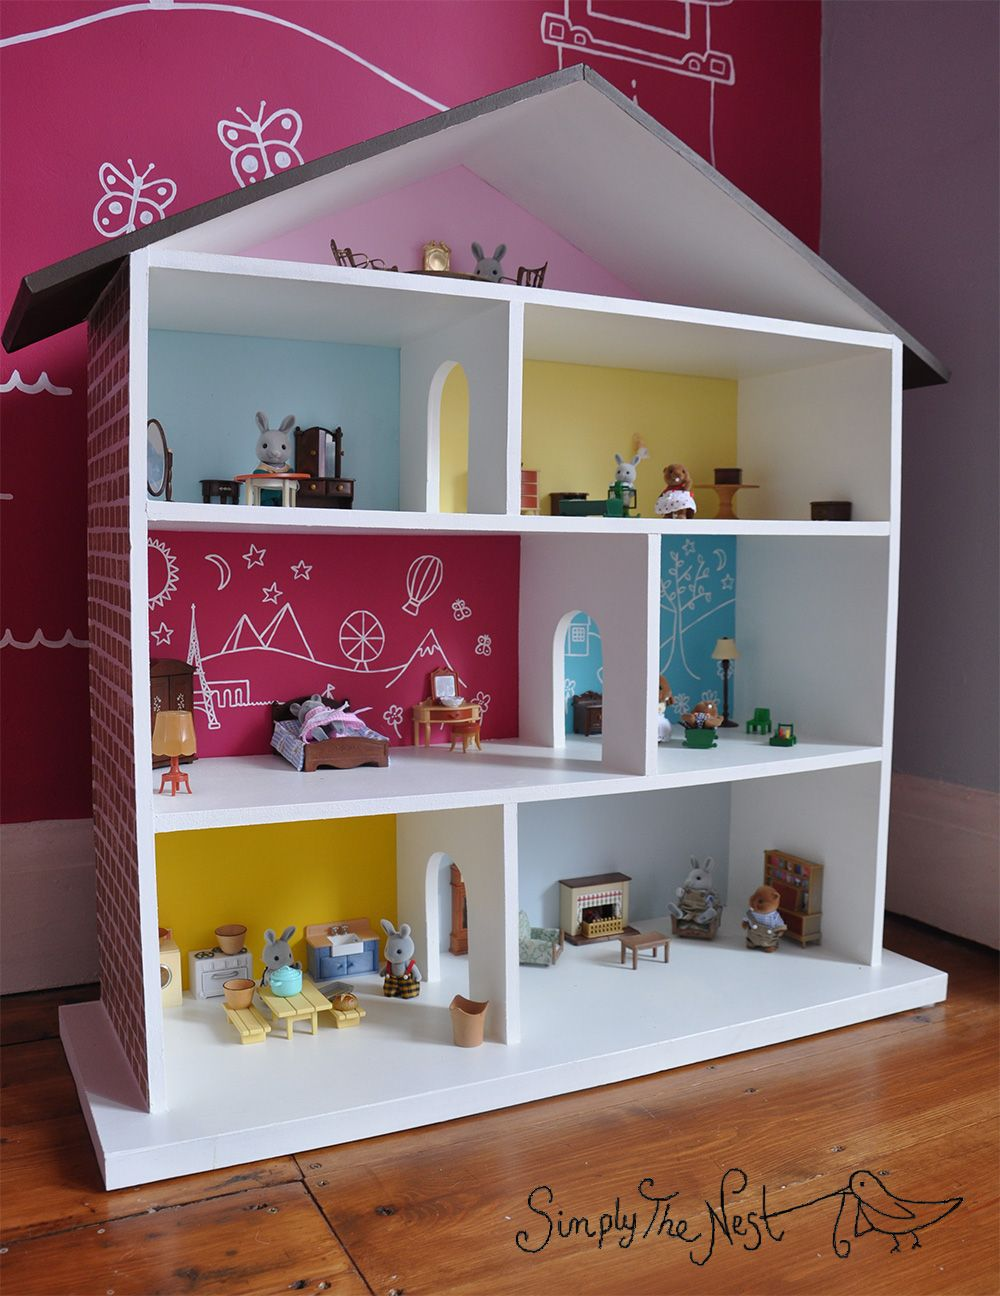 How To Make A Diy Dollhouse For A Toddler Simply The Nest